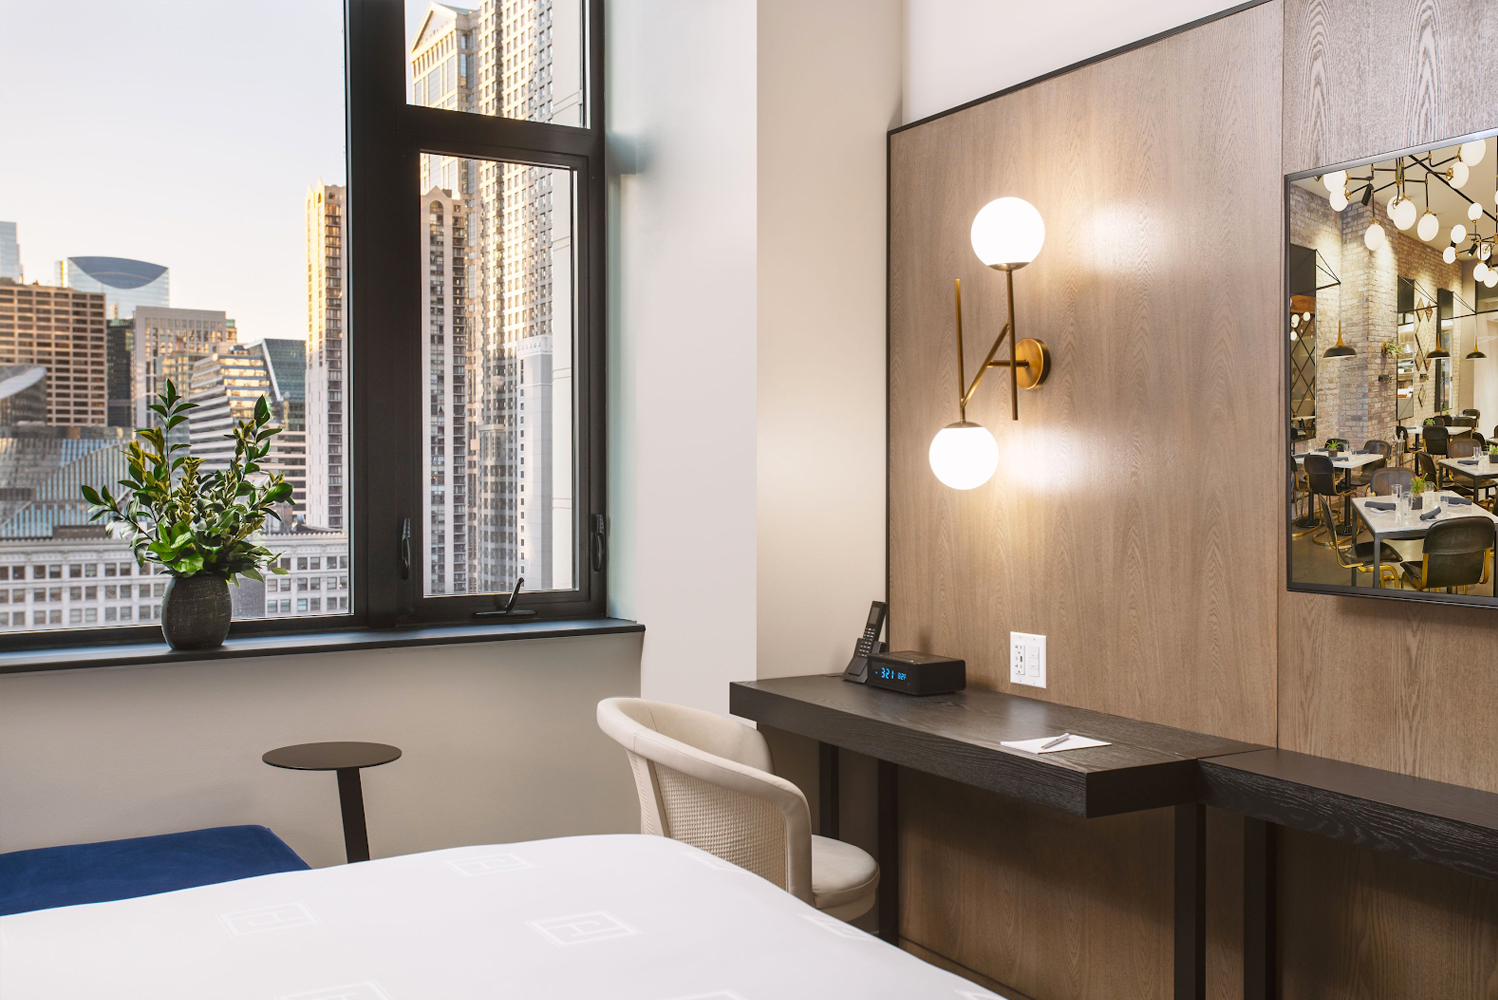 Following a $75 million renovation project, the property – located within a building that was originally designed by Chicago-born architect Benjamin Marshall in 1912 – now has 218 rooms.